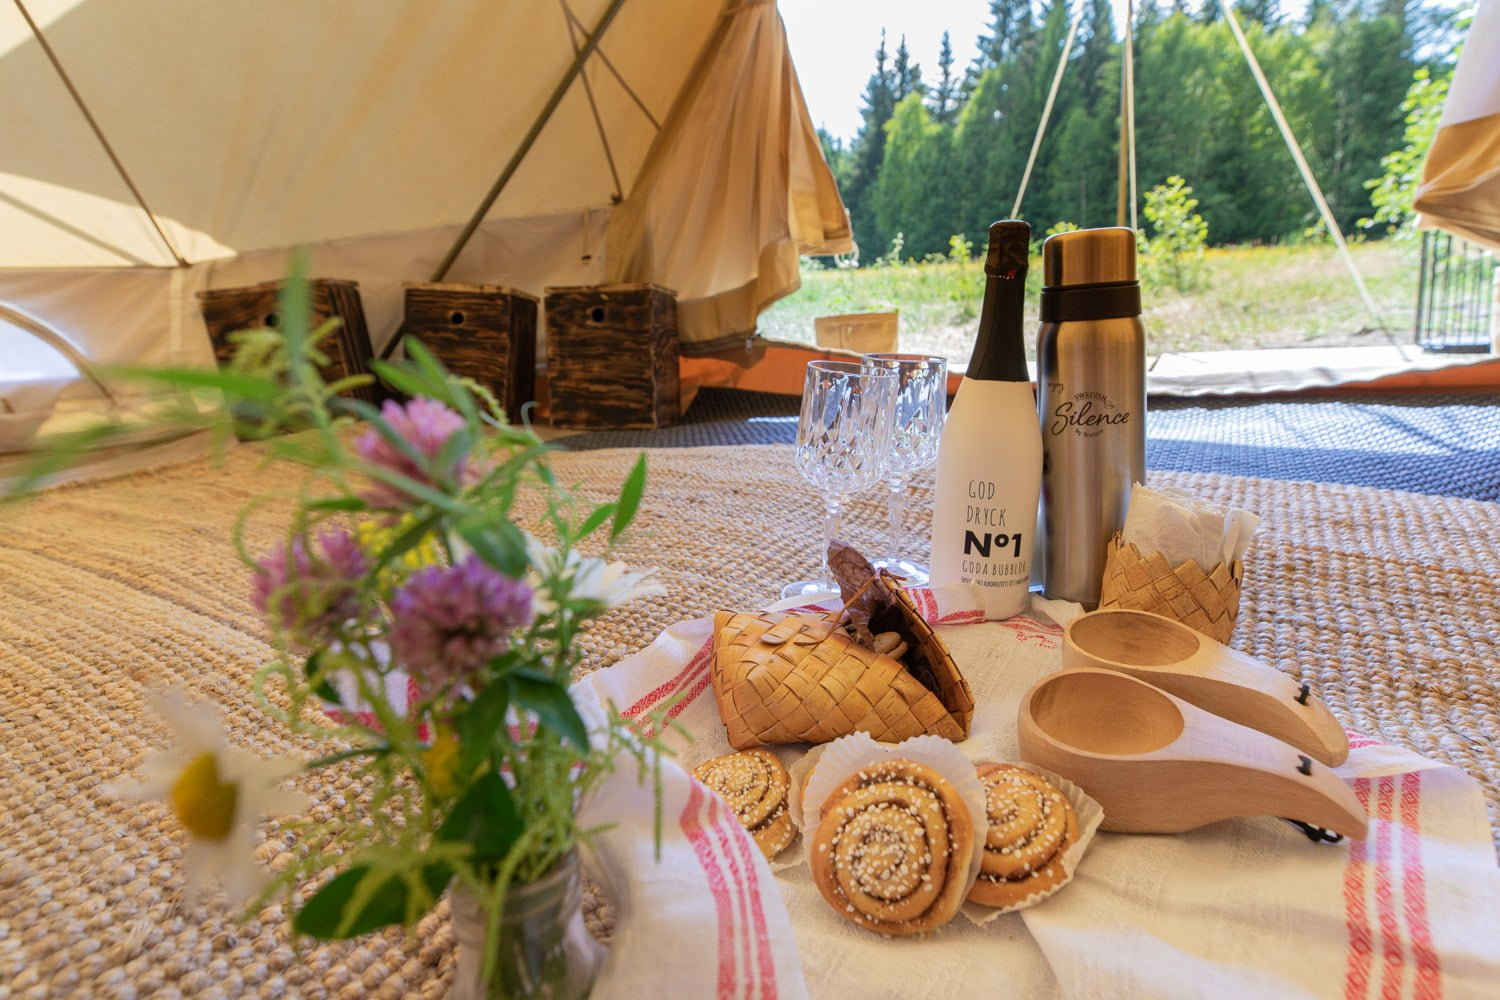 A warm welcome at the glamping in Dalarna - Sweden